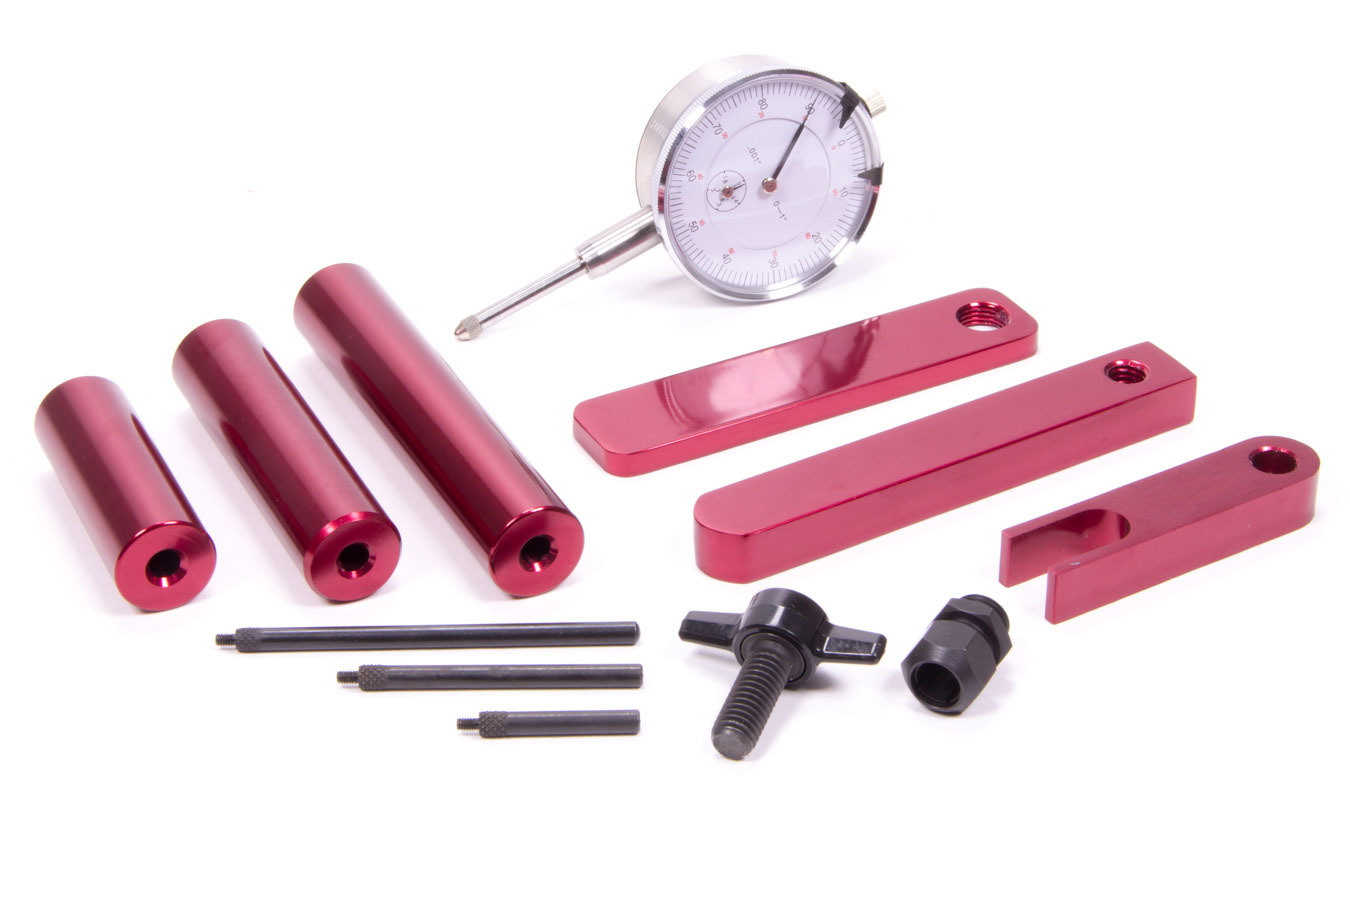 Proform 66516 Pinion Depth Setting Tool, Dial Indicator, Adapters / Stand, Aluminum, Red Anodized, Each